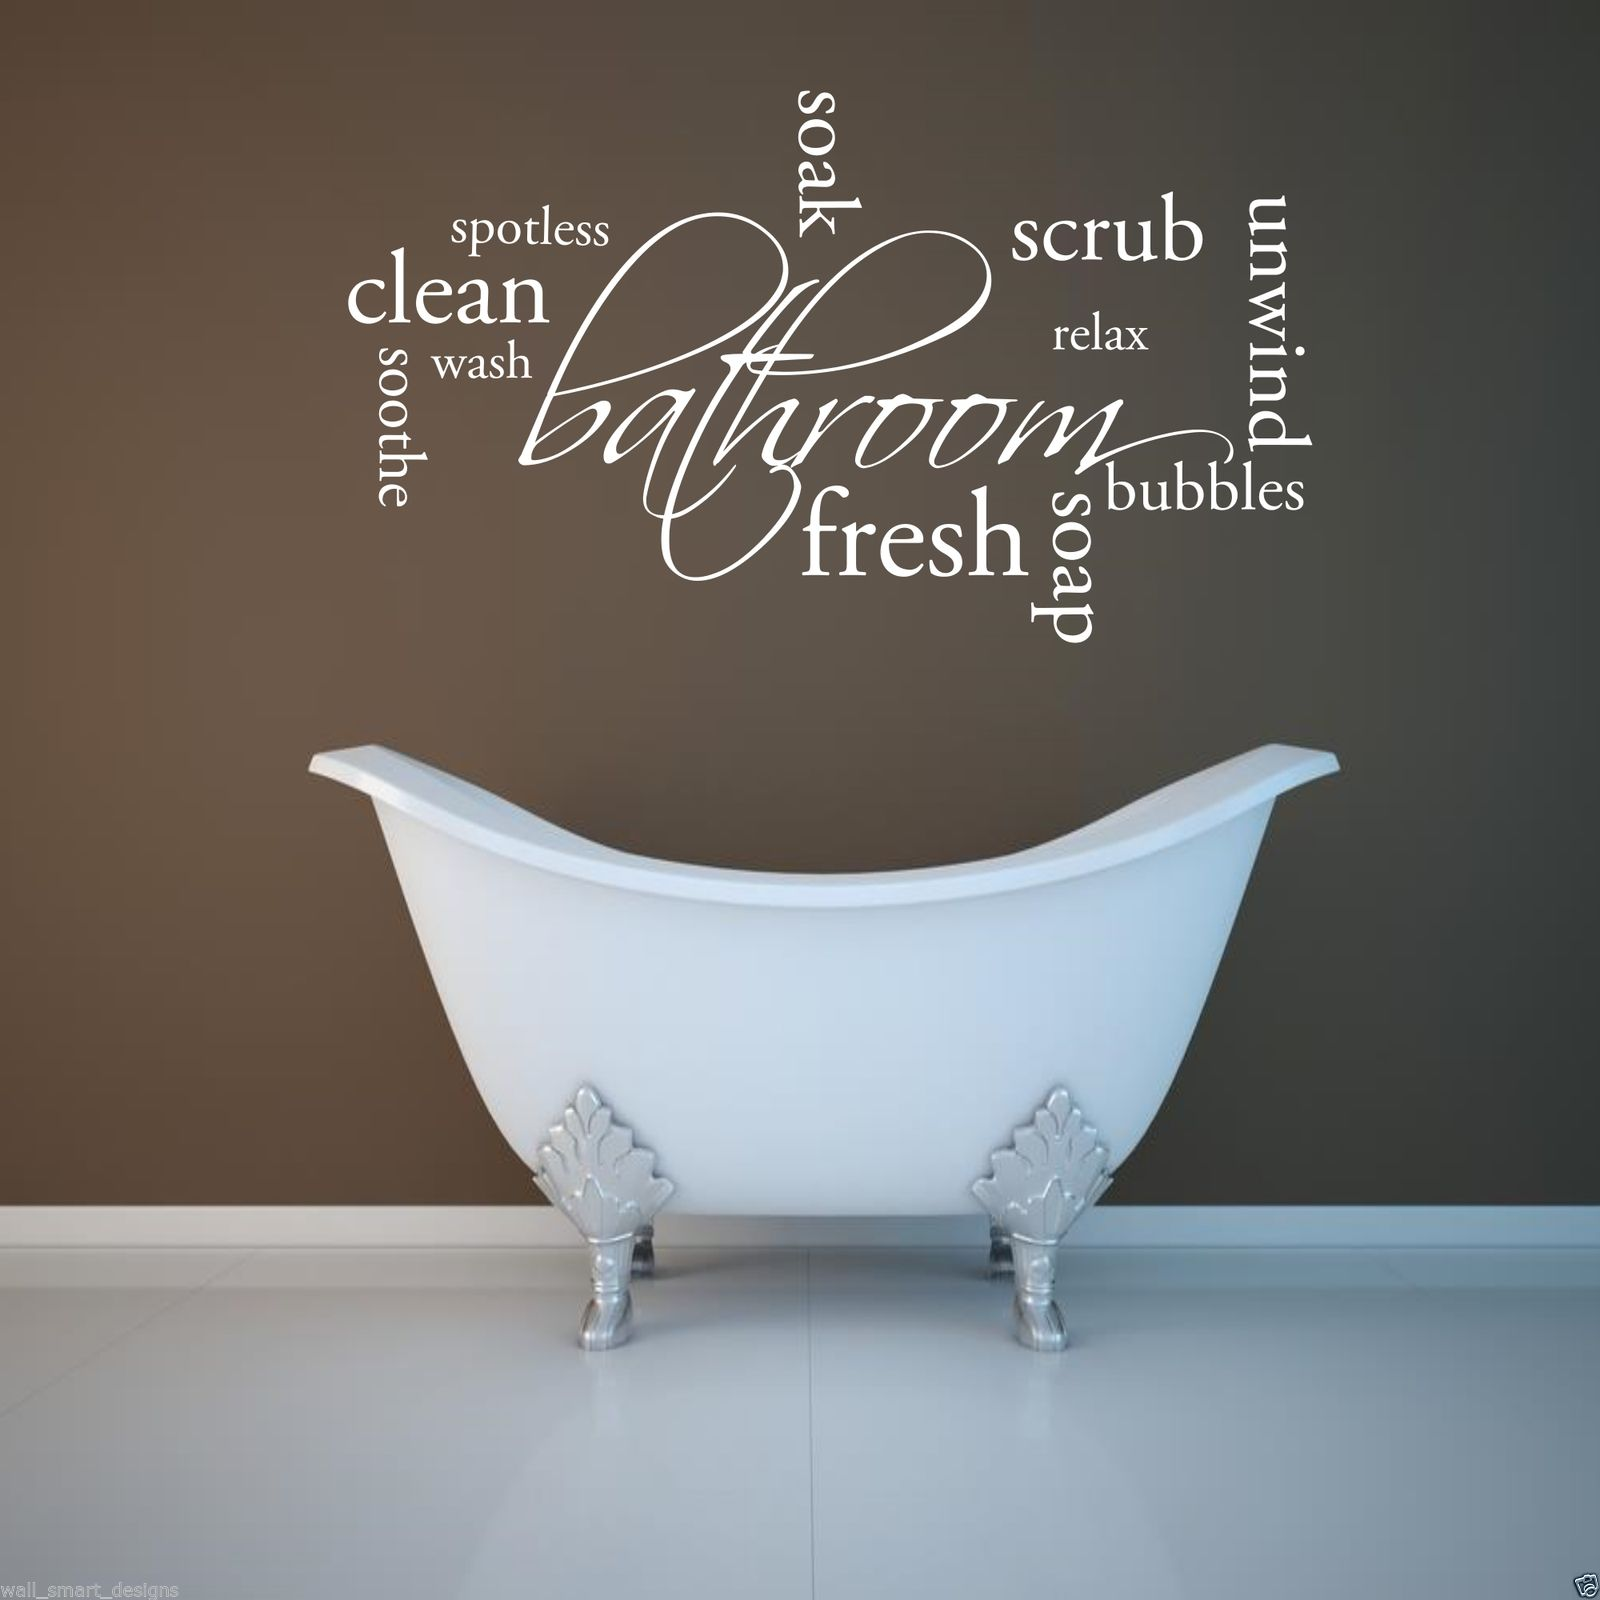 Awesome Relax Soap Bathroom Wall Art Sticker Quote Decal